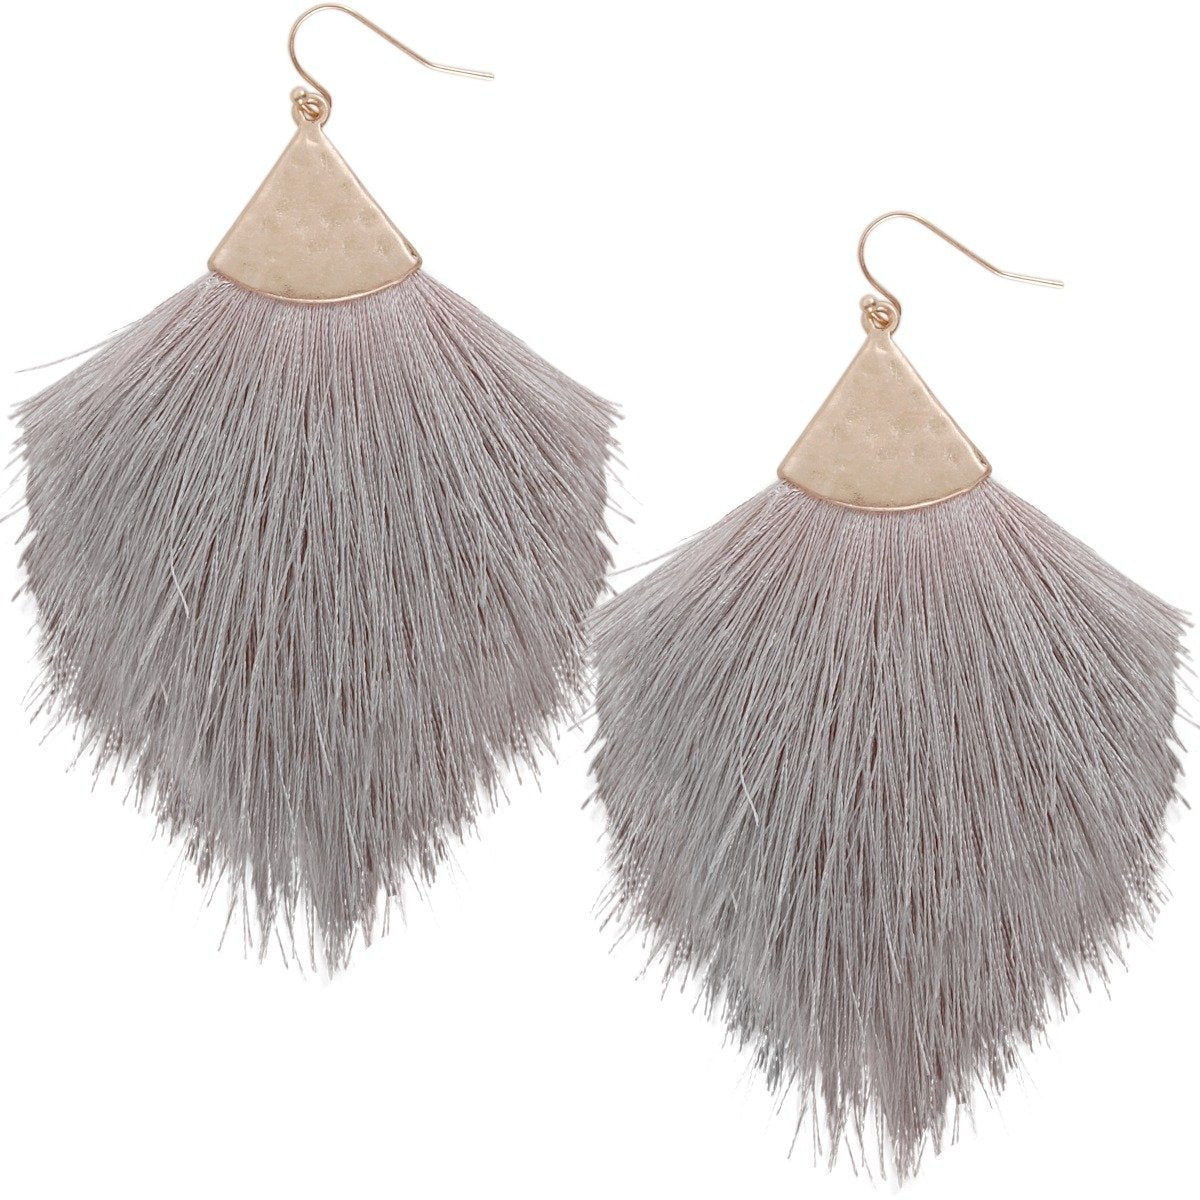 Humble Chic Fringe Tassel Earrings - Lightweight Long Feather